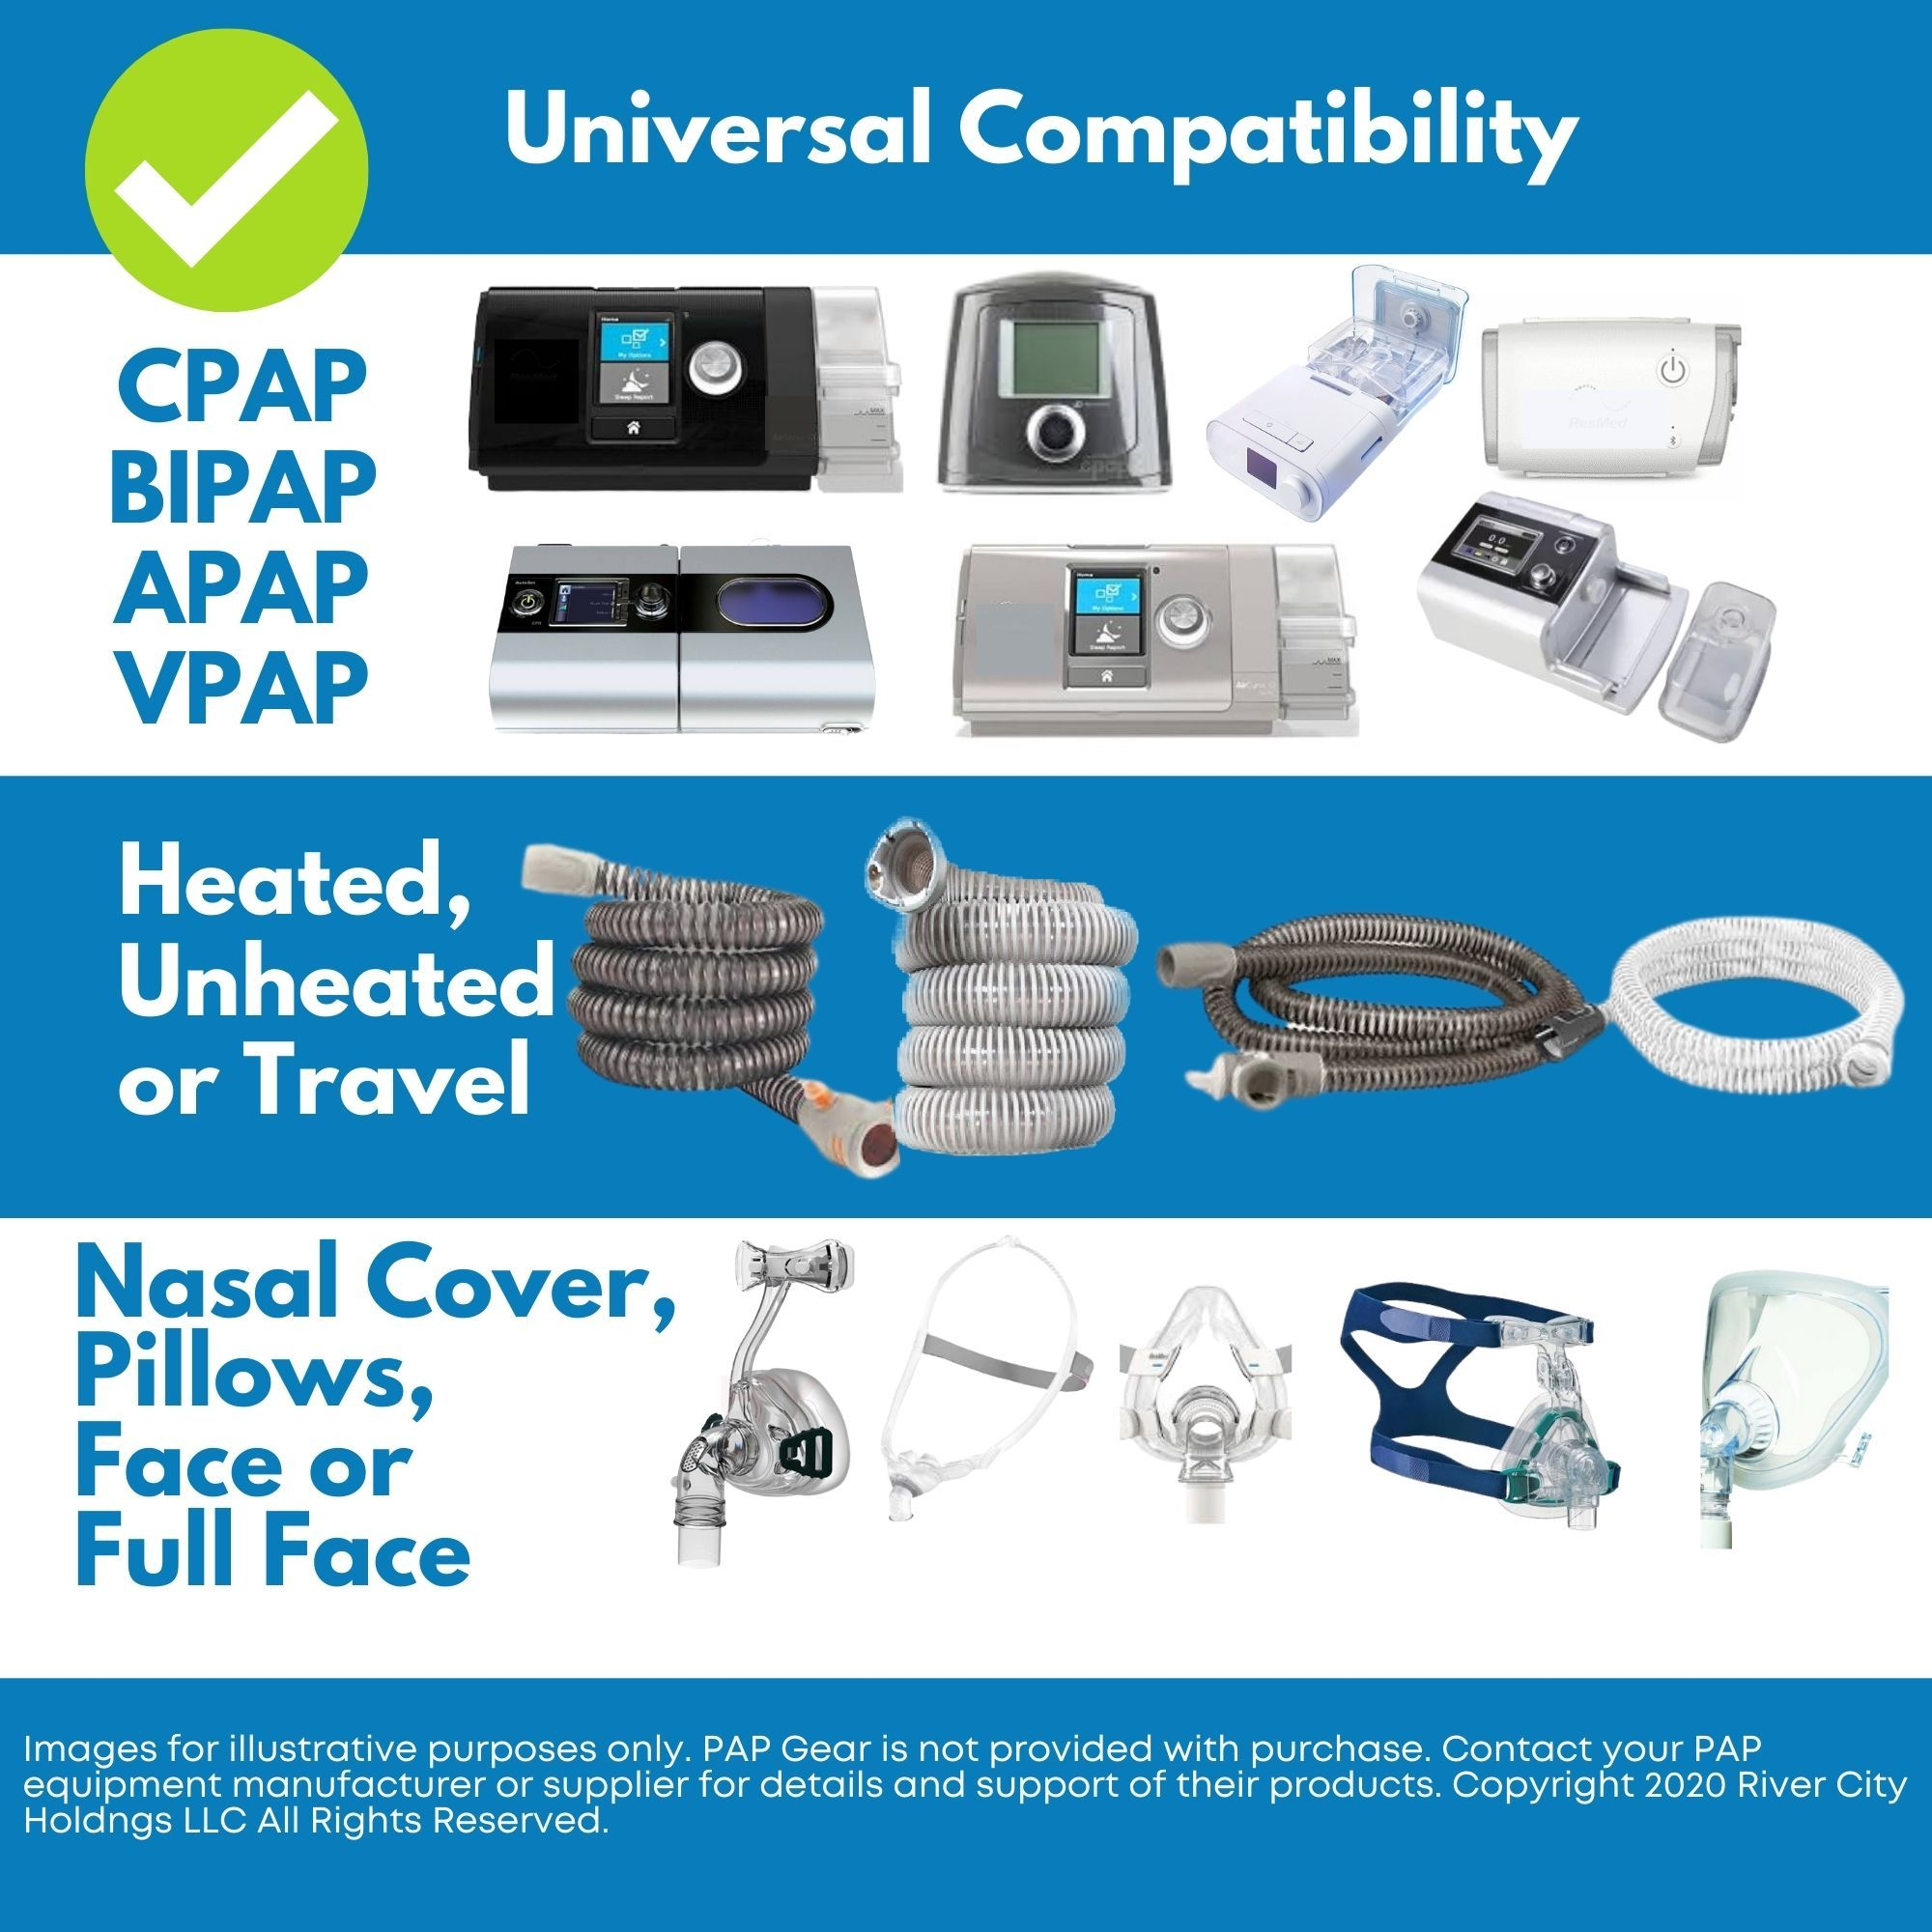 Respify CPAP Cleaner Compatibility